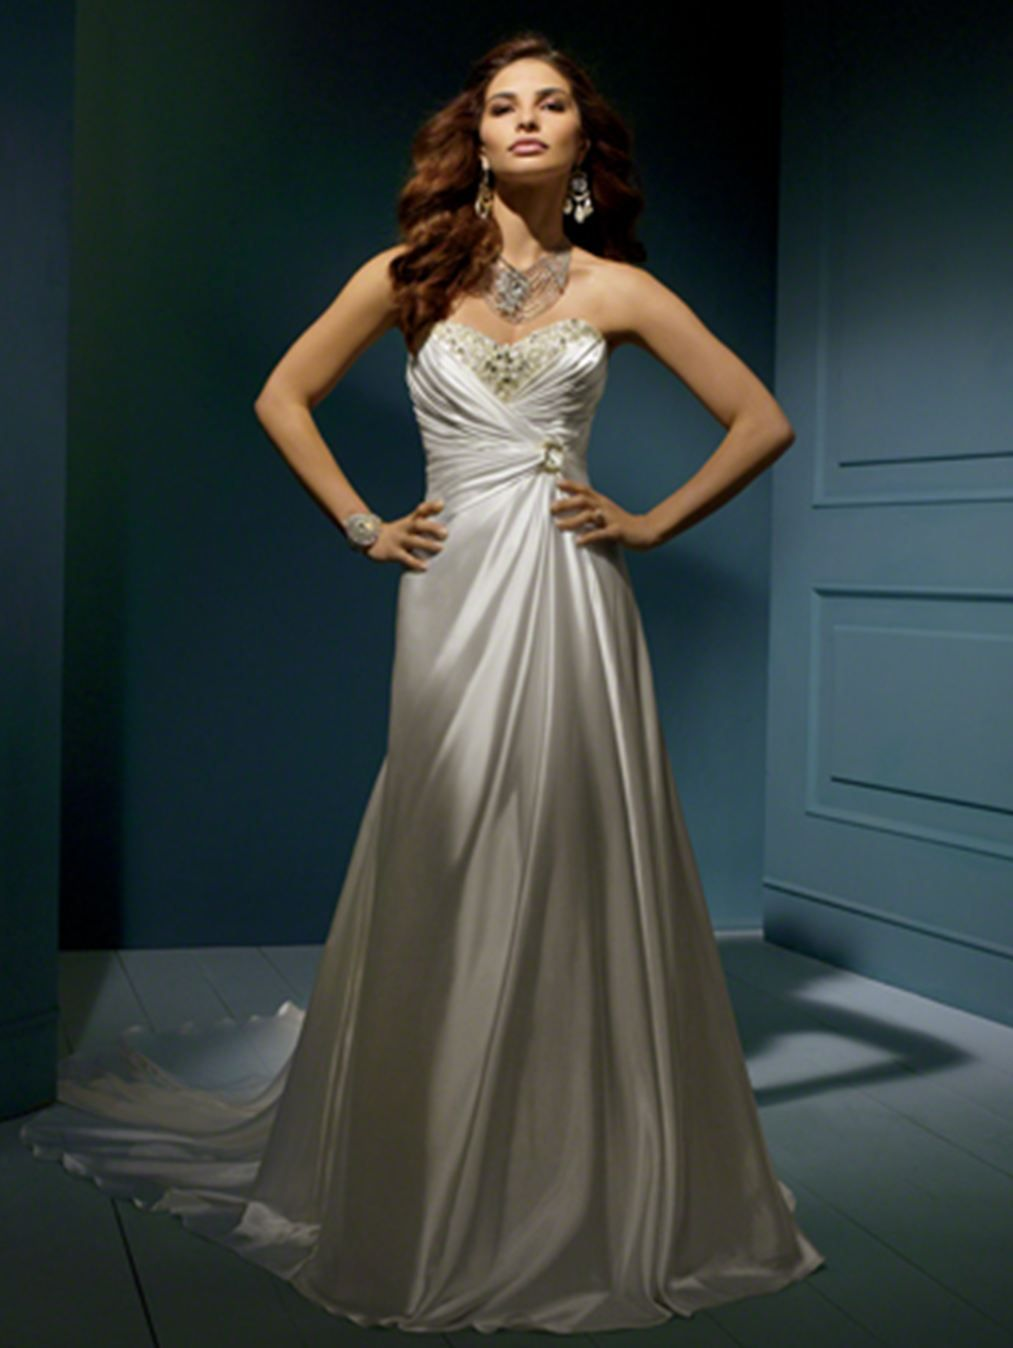 Alfred angelo bridal gown style 849 fashion dresses pinterest alfred angelo bridal gown style 849 ombrellifo Choice Image